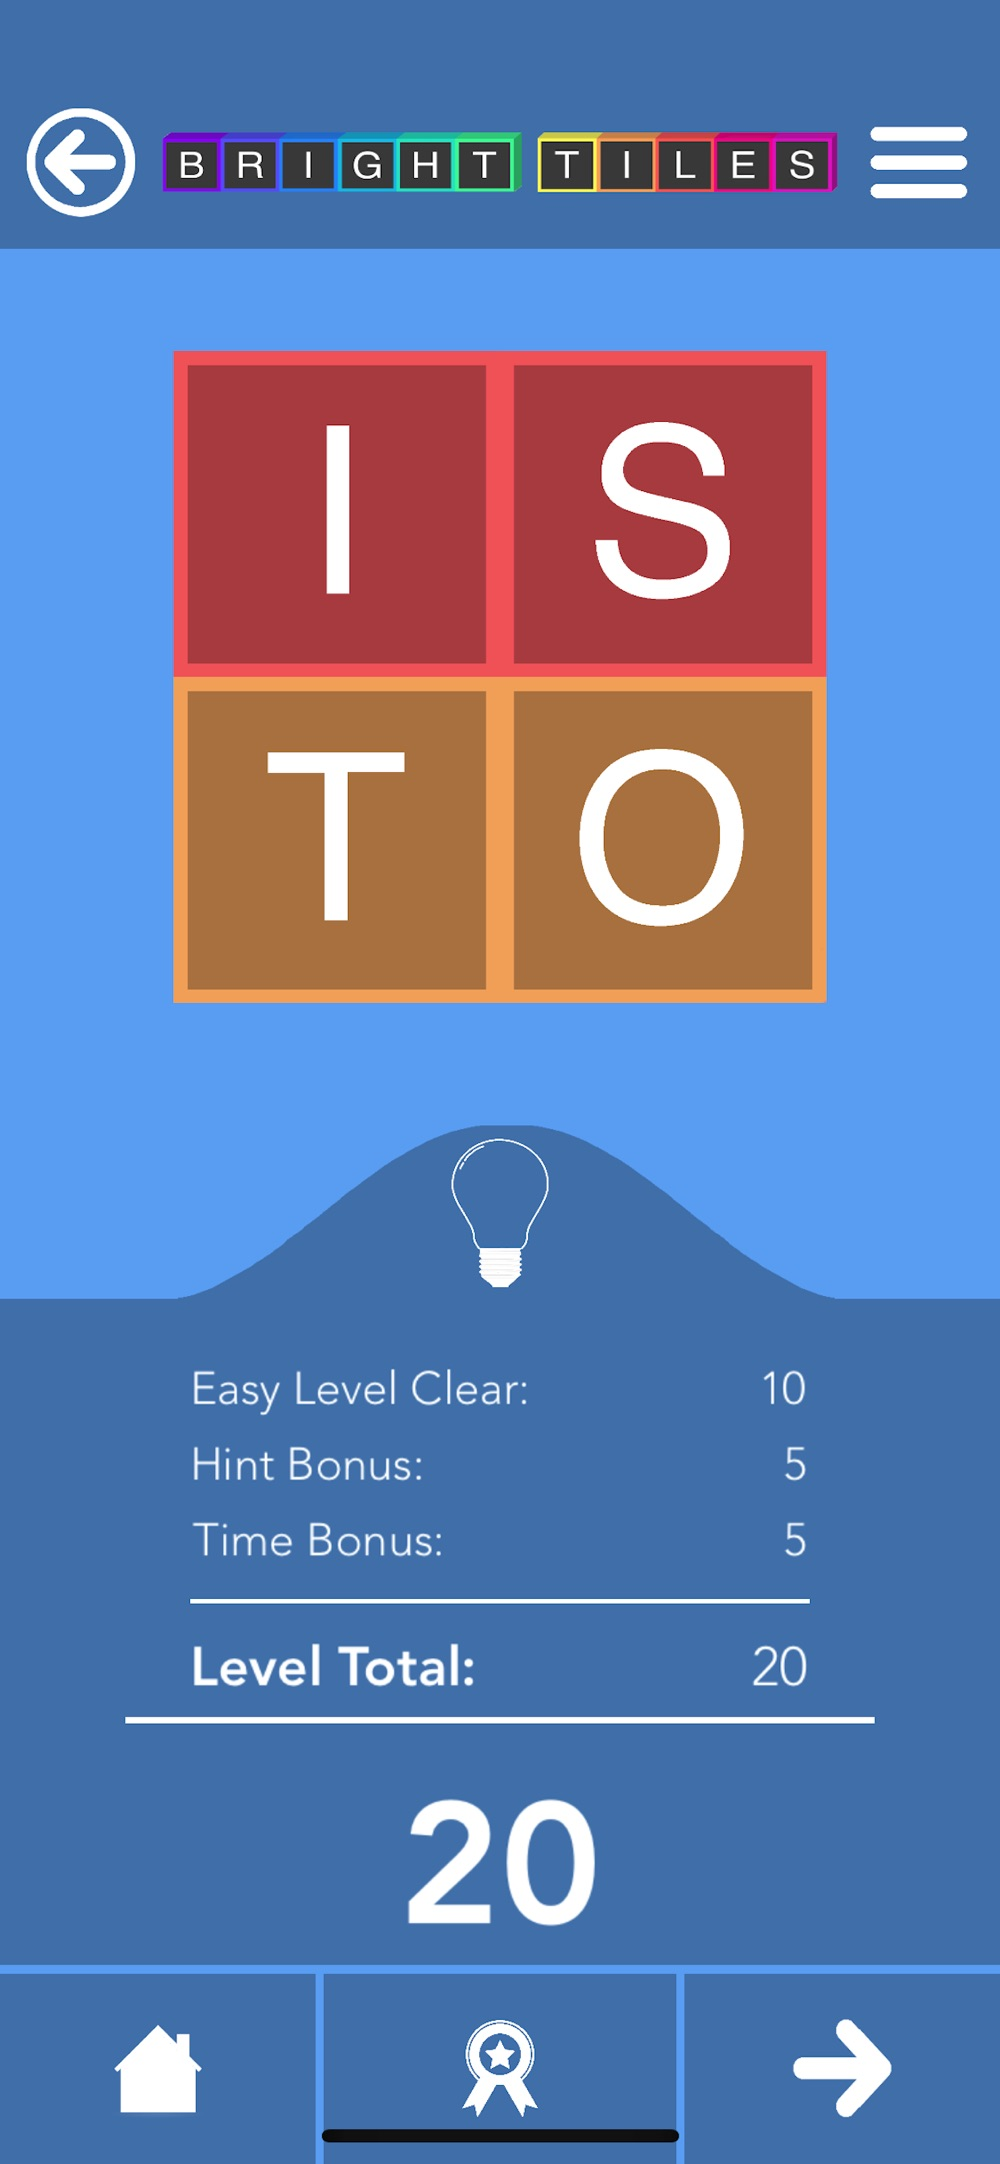 Bright Tiles - Word Puzzles hack tool